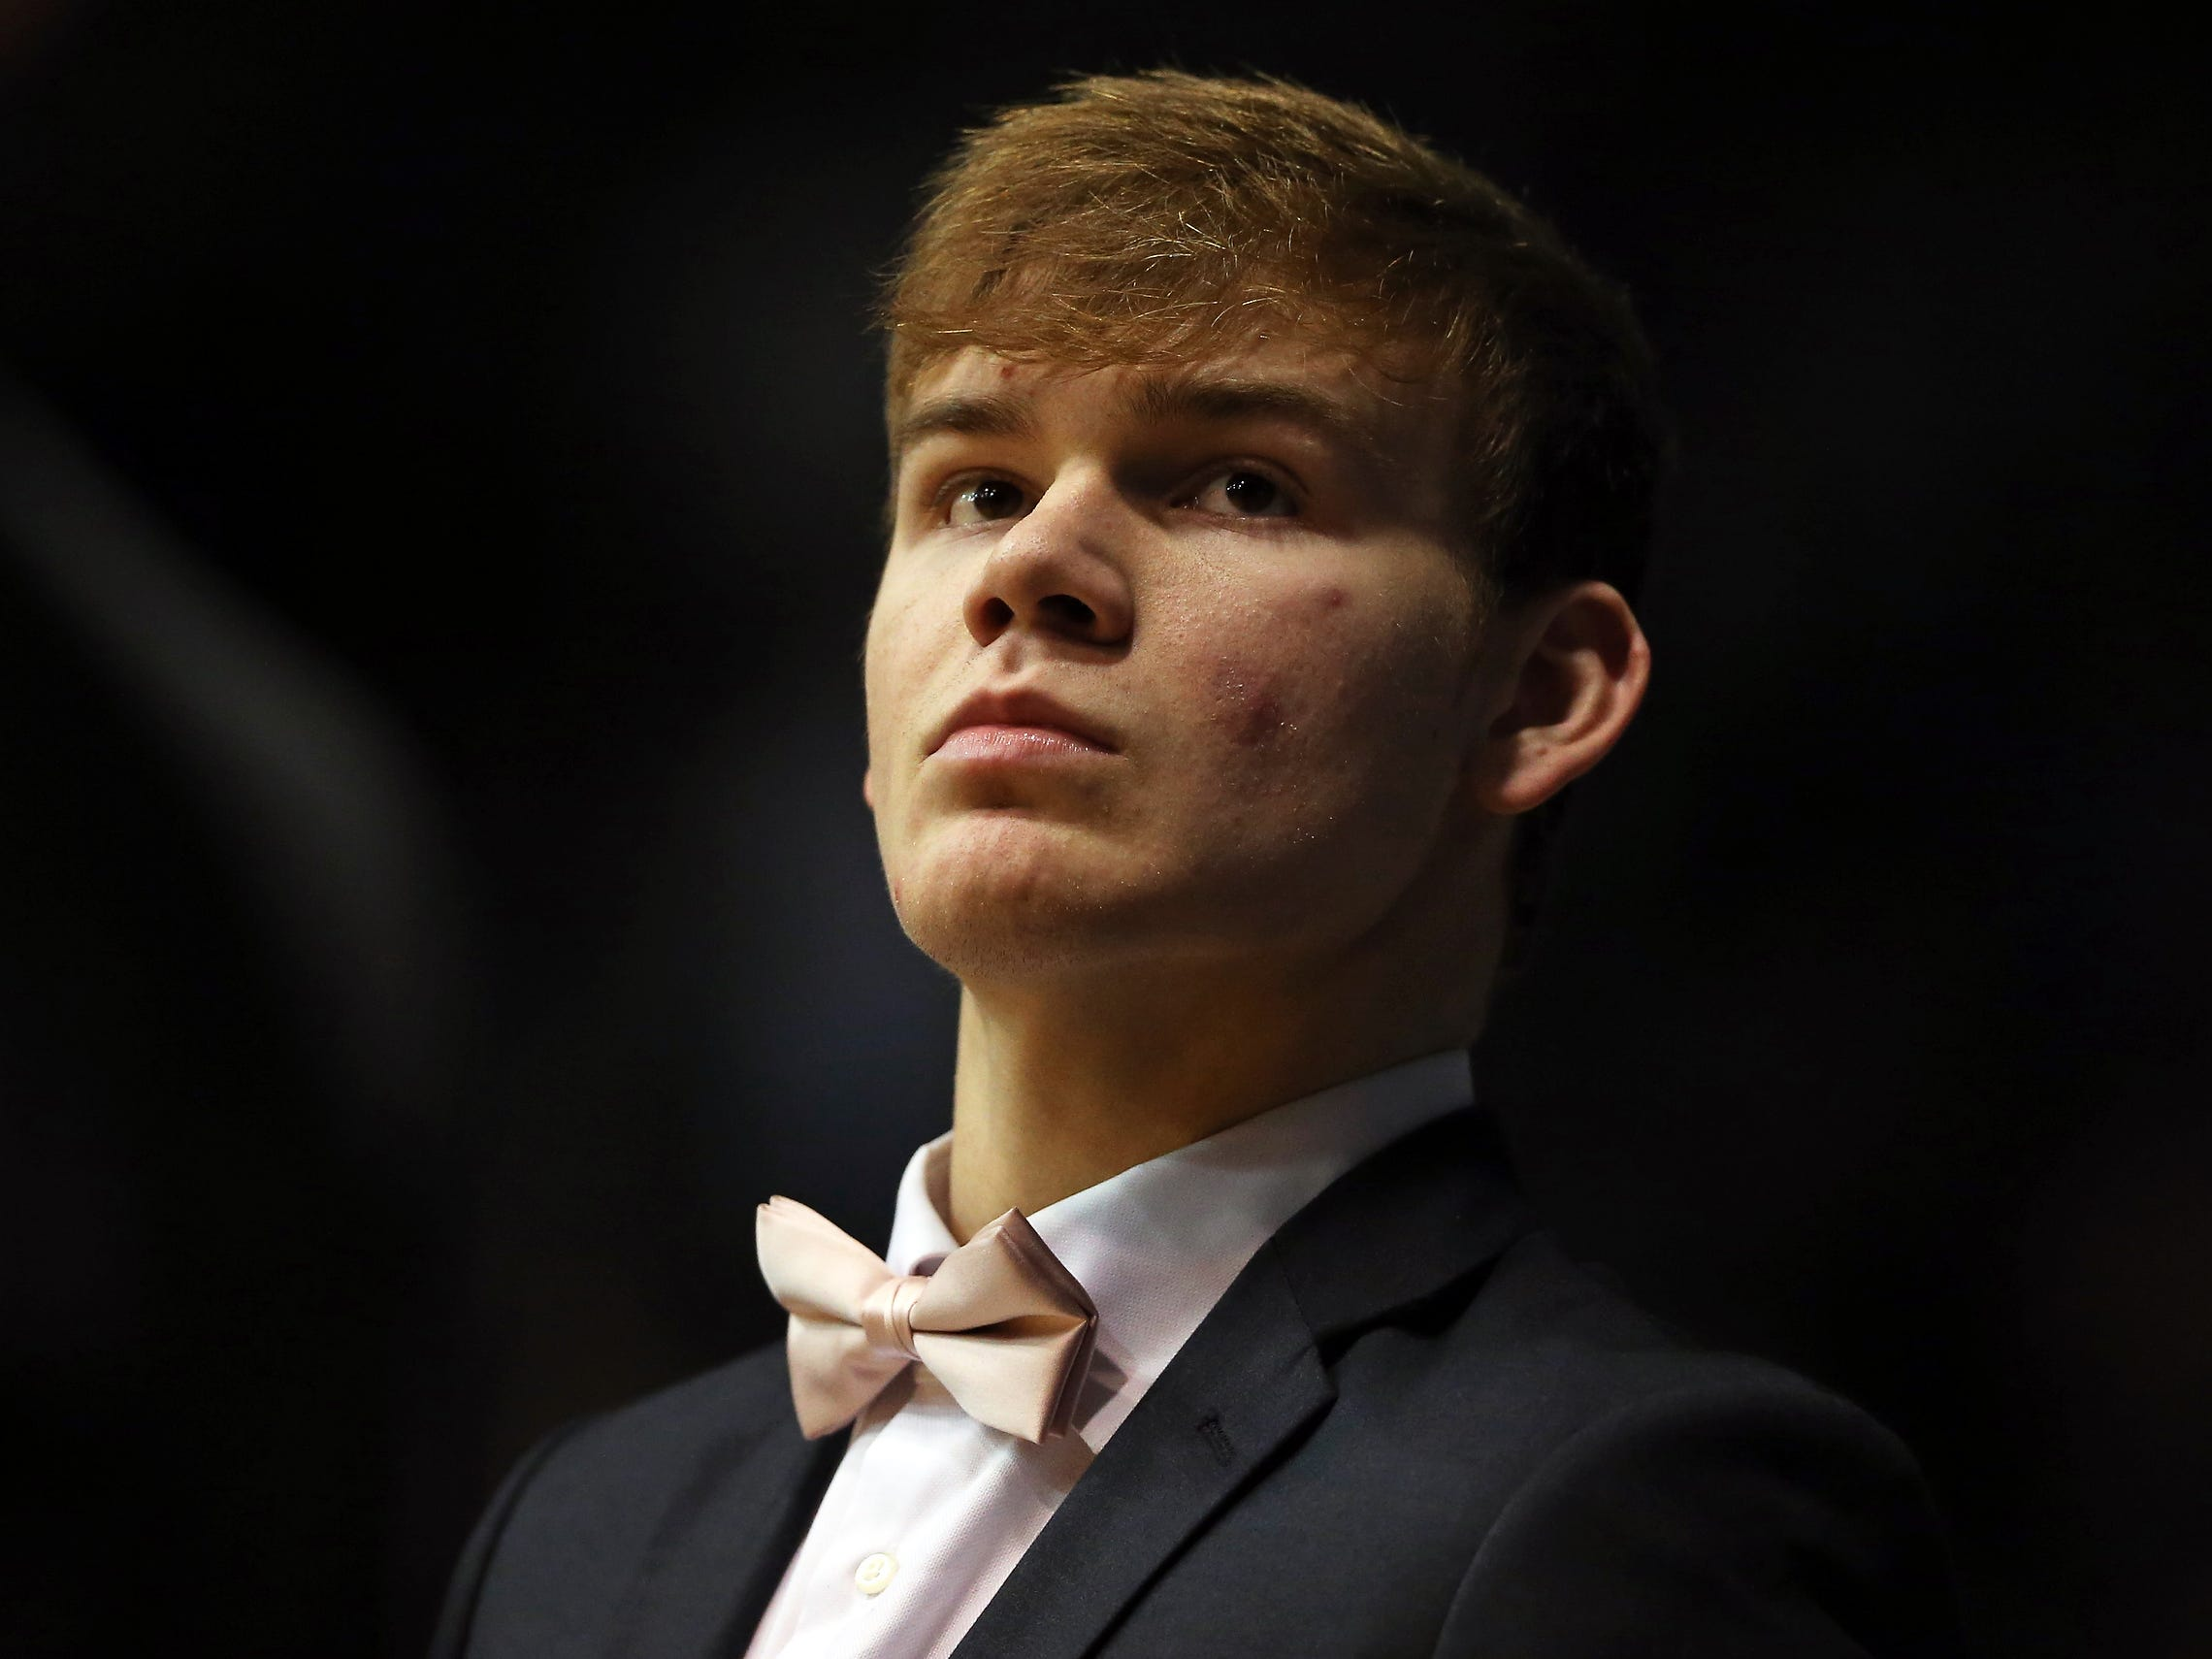 Georgetown Hoyas guard Mac McClung (2) sits out during the game between Butler University and Georgetown University, at Hinkle Fieldhouse in Indianapolis, Indiana on Wednesday, Jan. 2, 2019.